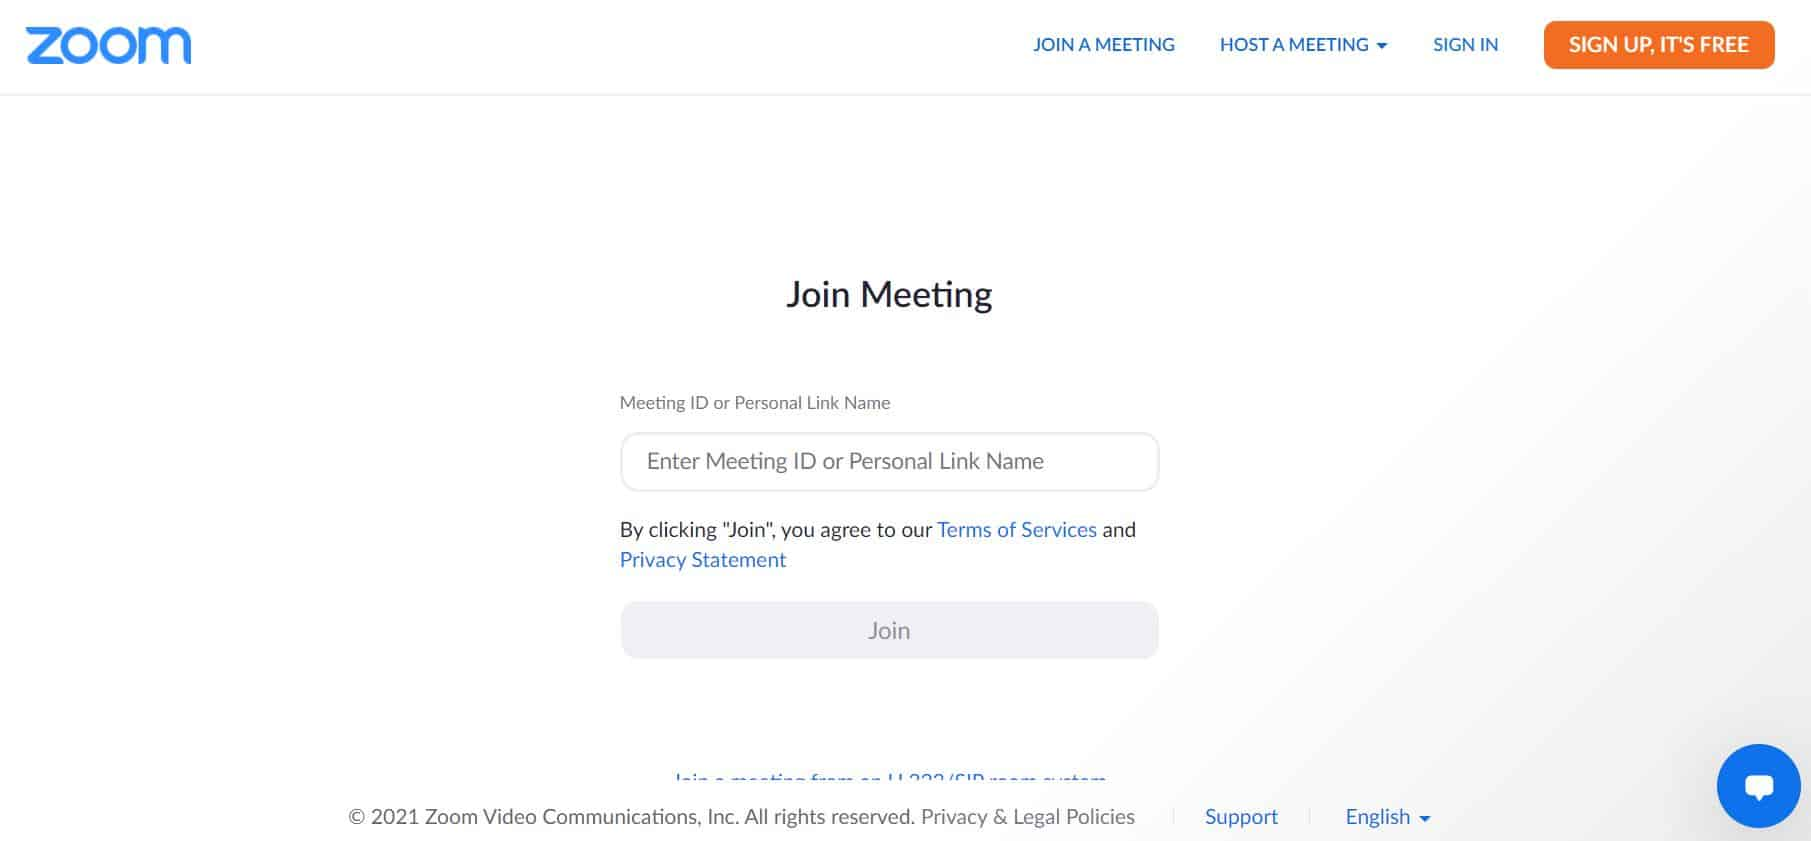 Showing readers how they can join a Zoom meeting